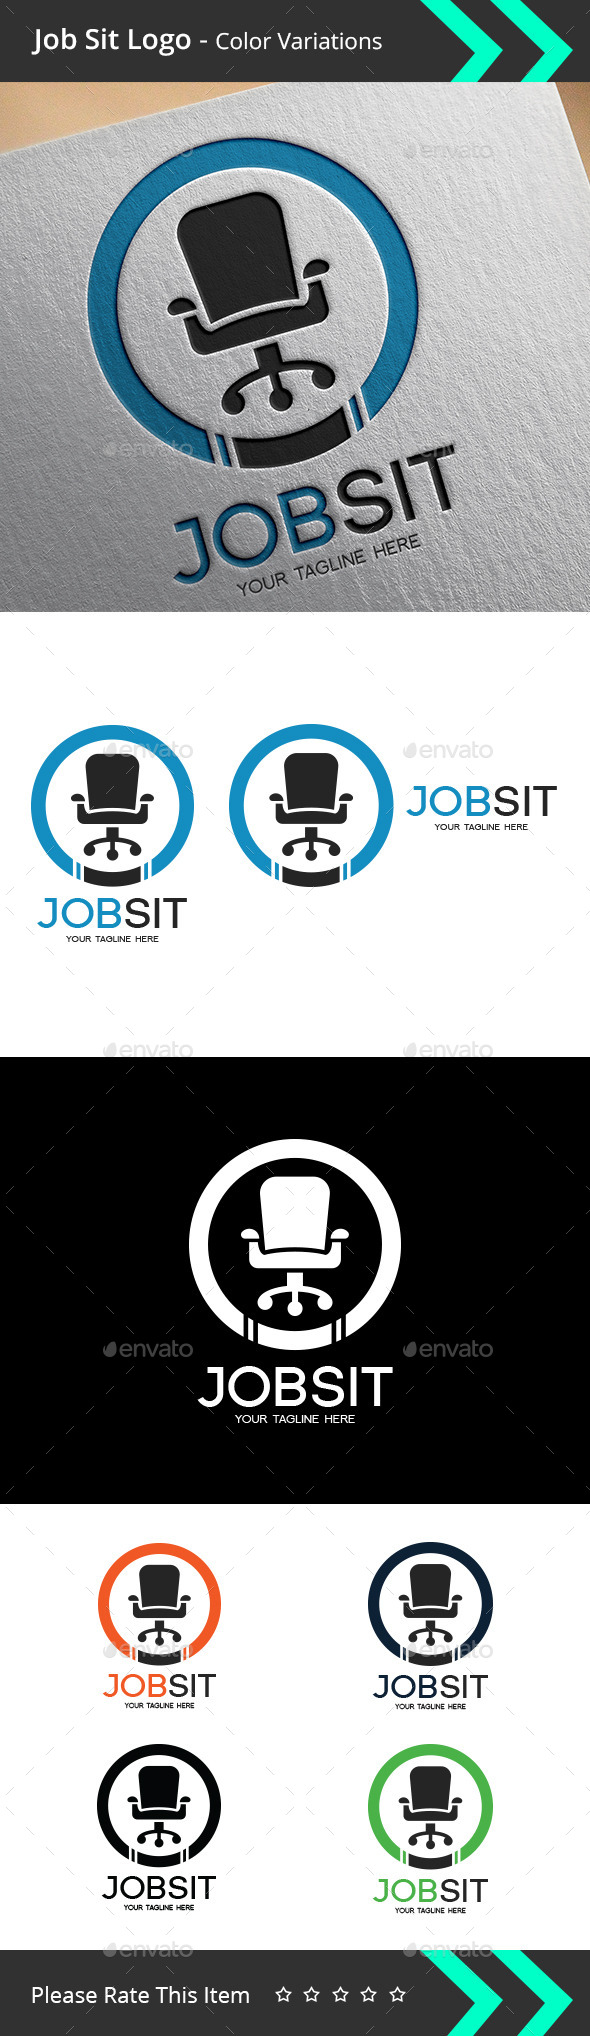 GraphicRiver Job Sit Logo 9493968